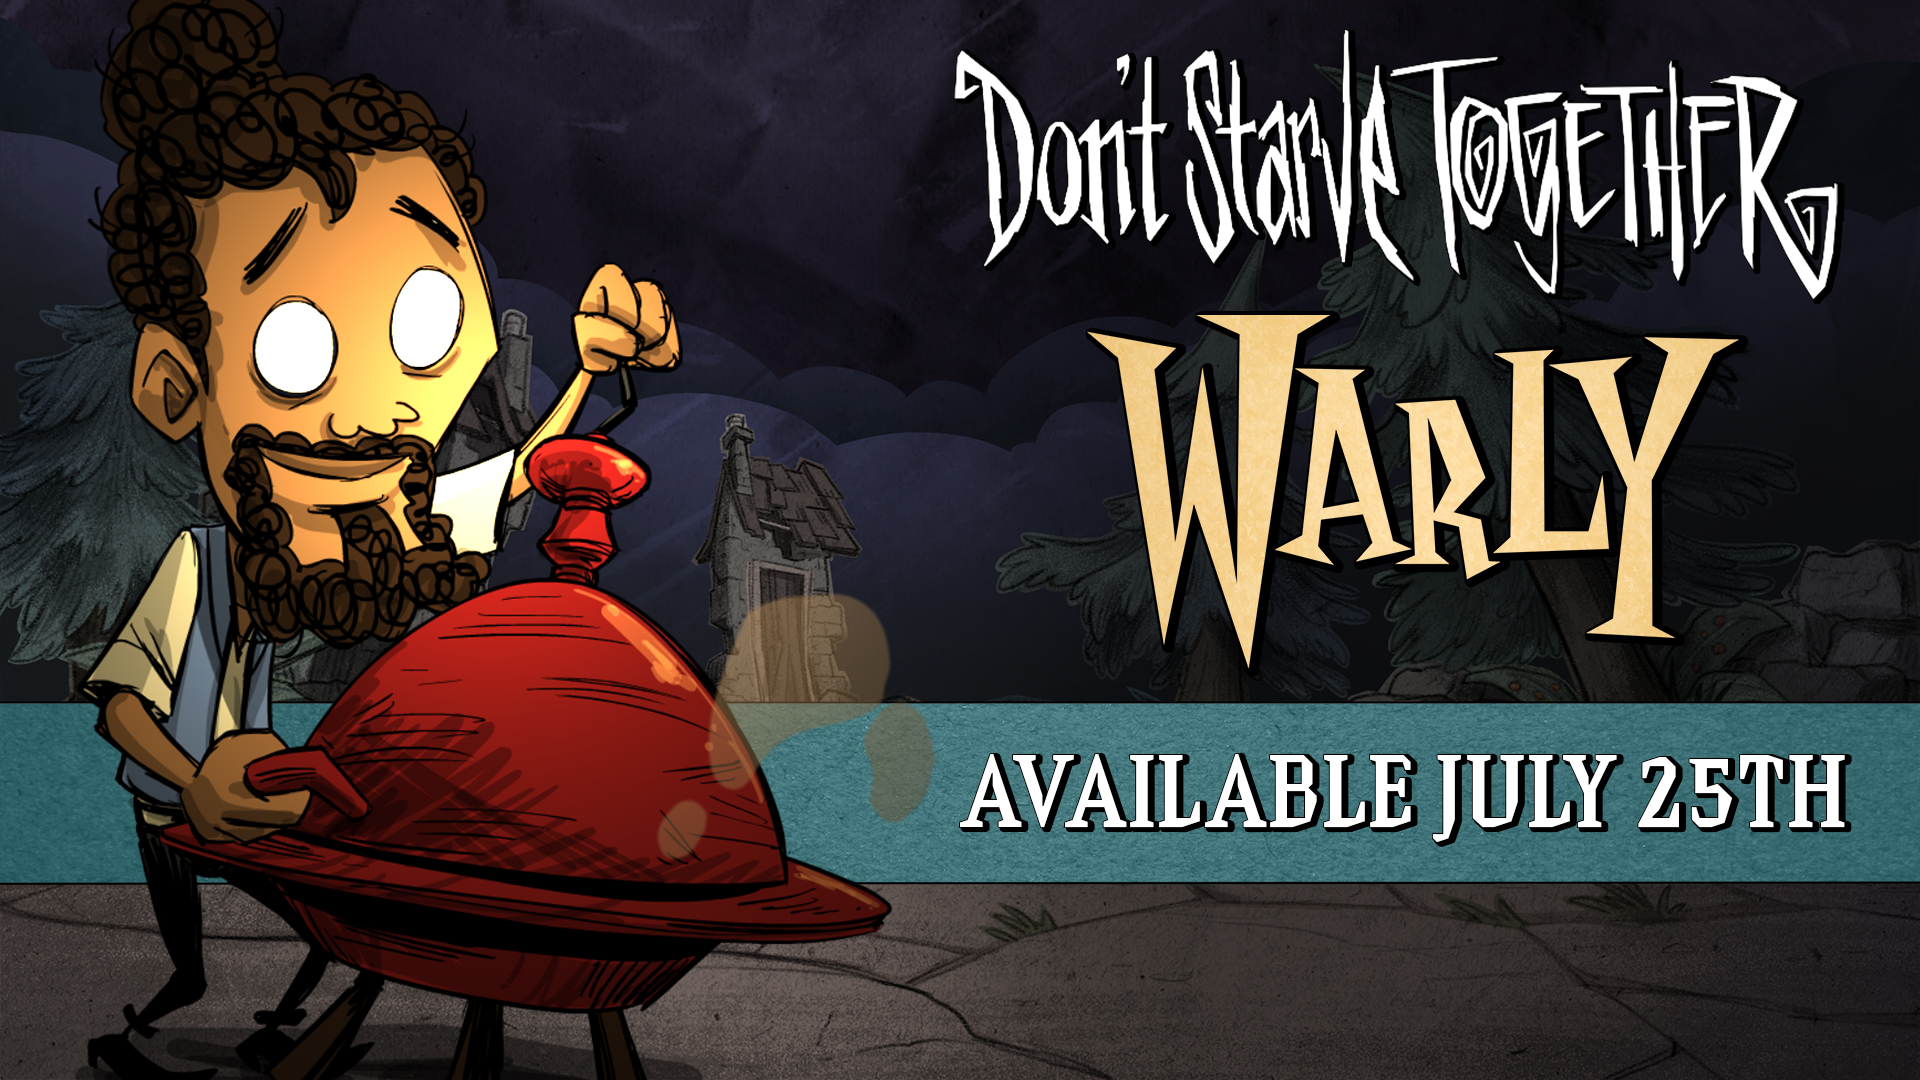 New Don't Starve Together Character Warly Being Added This Week